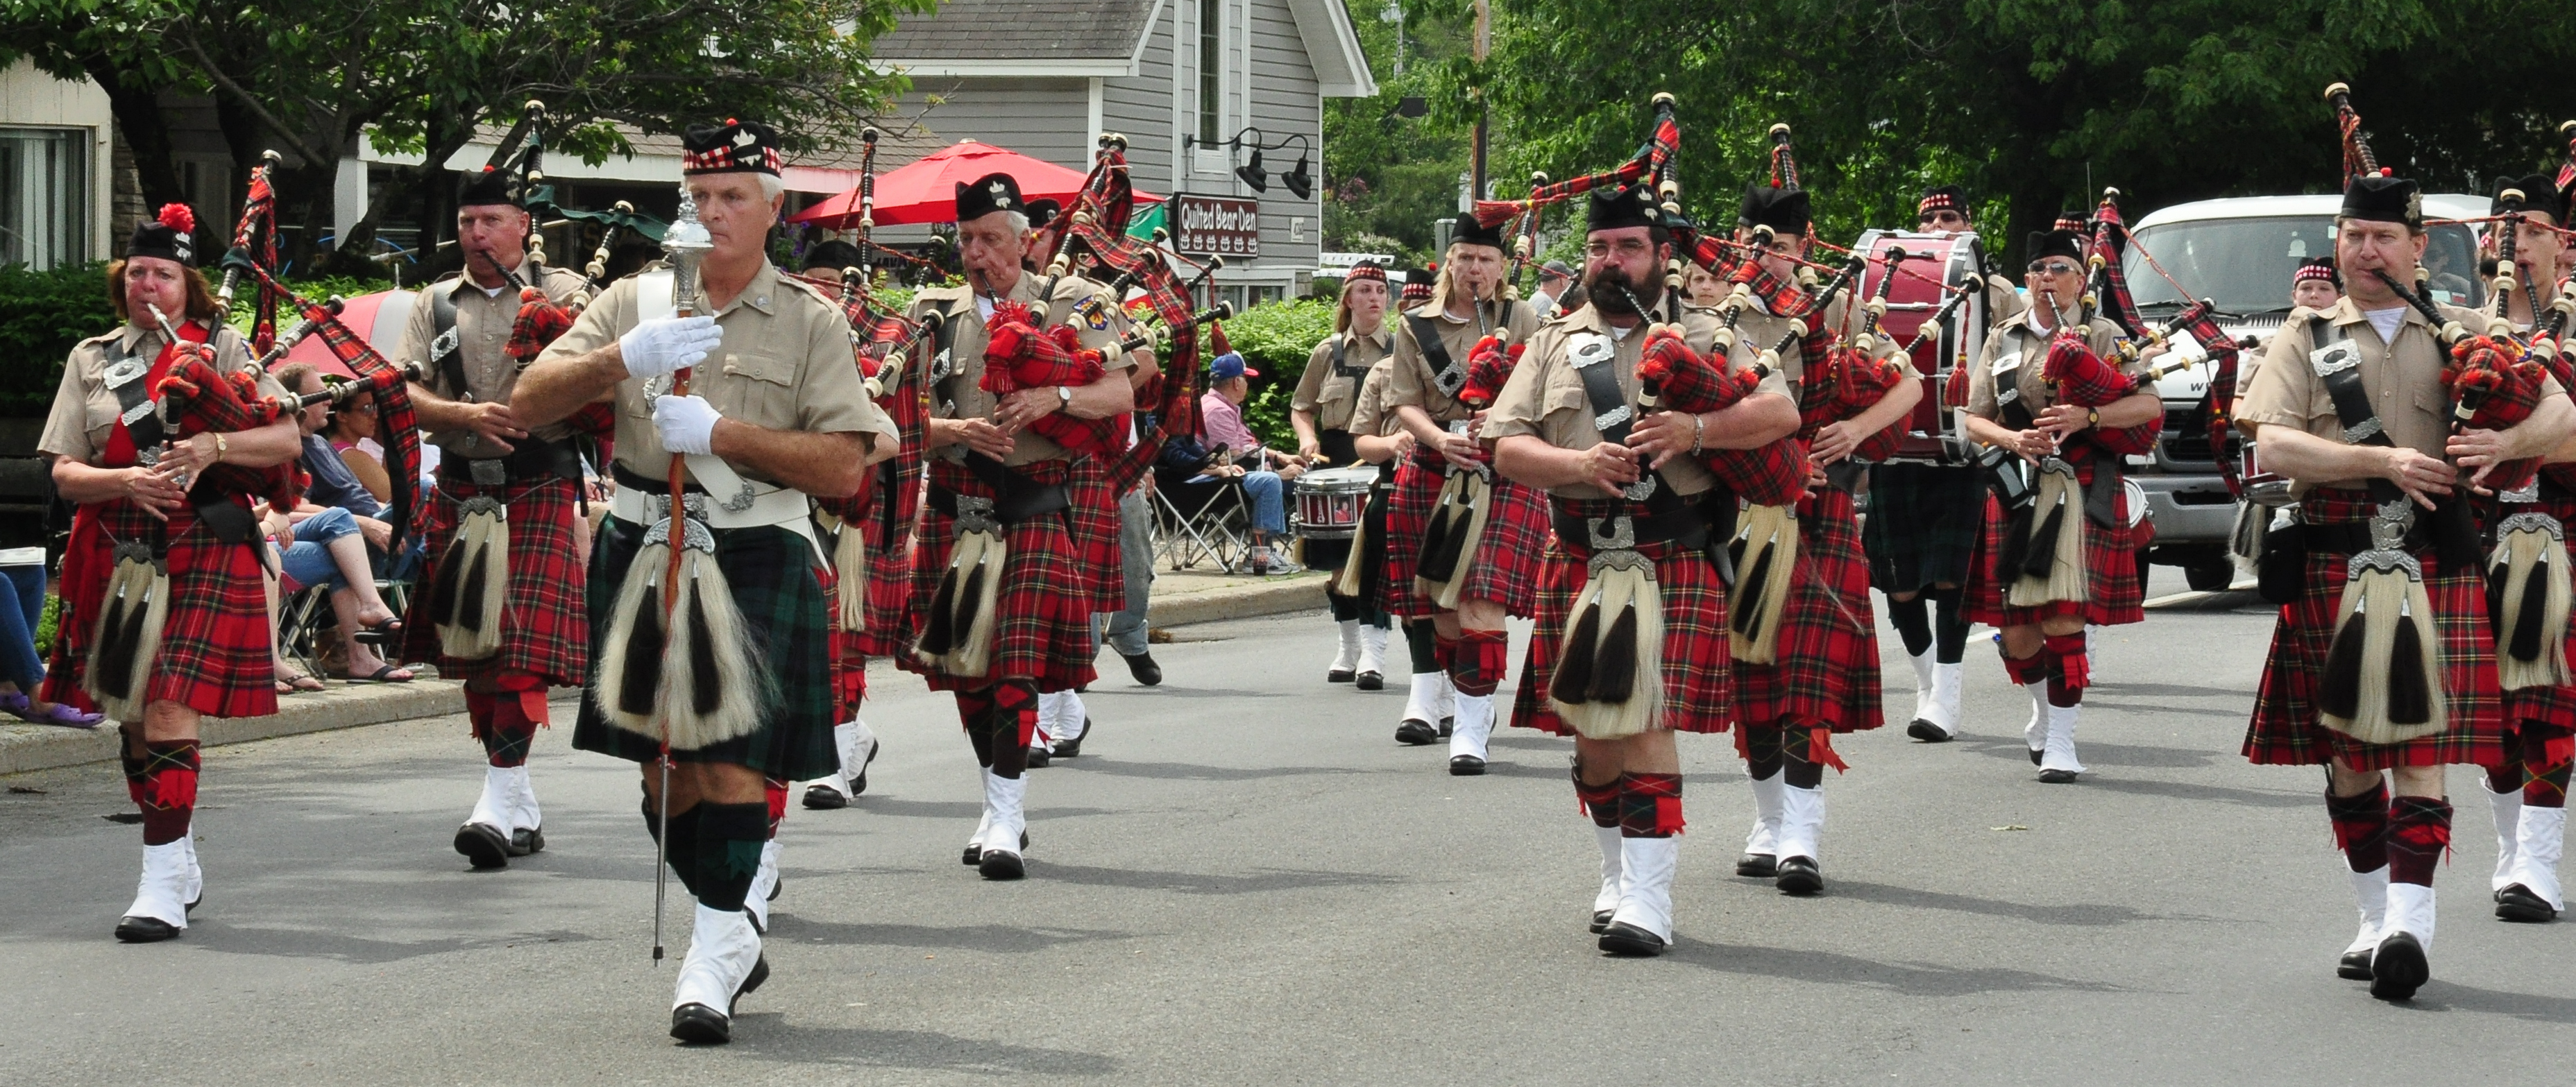 Band members Janet Whalen, far left, William Moriarty, Bill Tompkins, Wayne Merrick, David Allan, and Dan Kearney march in Hyde Park in 2012. Courtesy Photo / Alnwick Photography